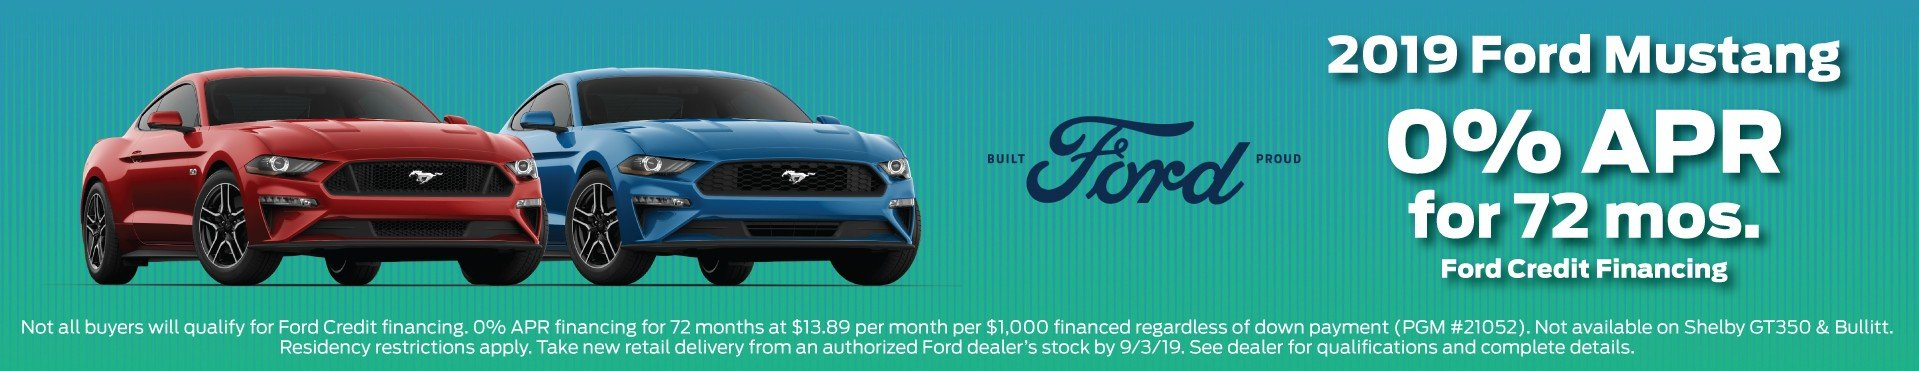 2019 Mustang Incentive 9-3-2019